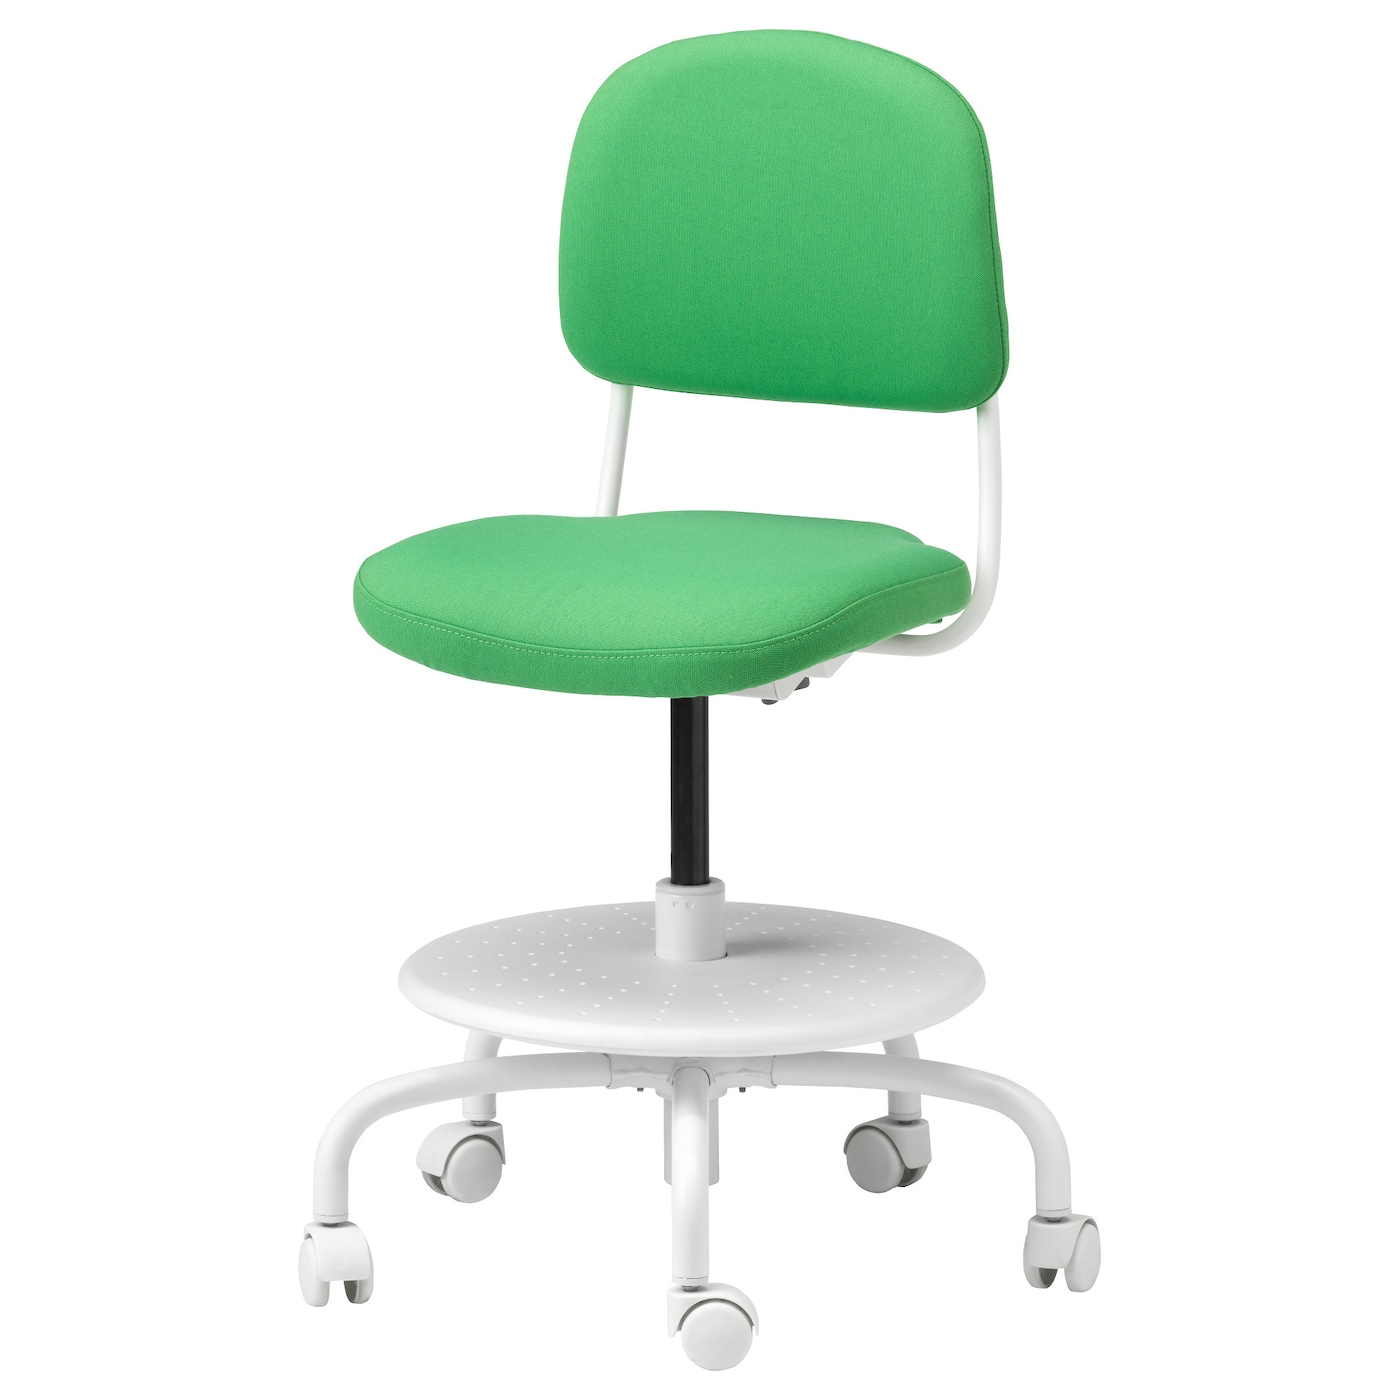 IKEA VIMUND children's desk chair